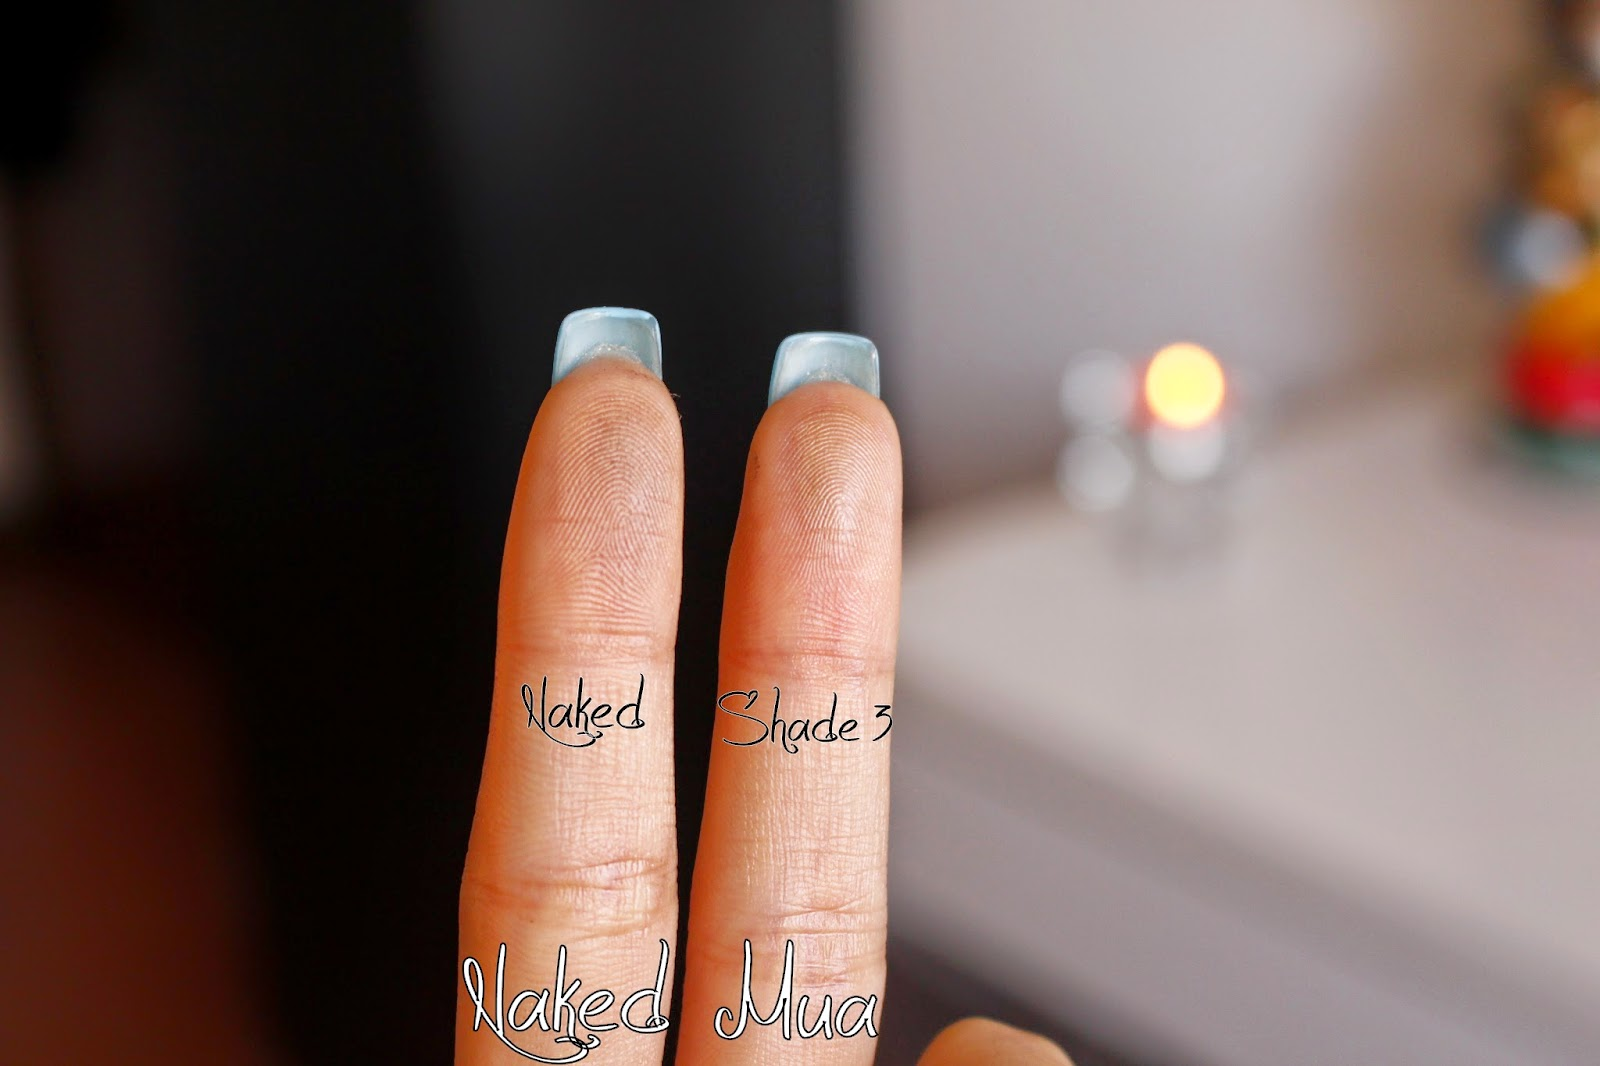 Naked Mua naked shade 3